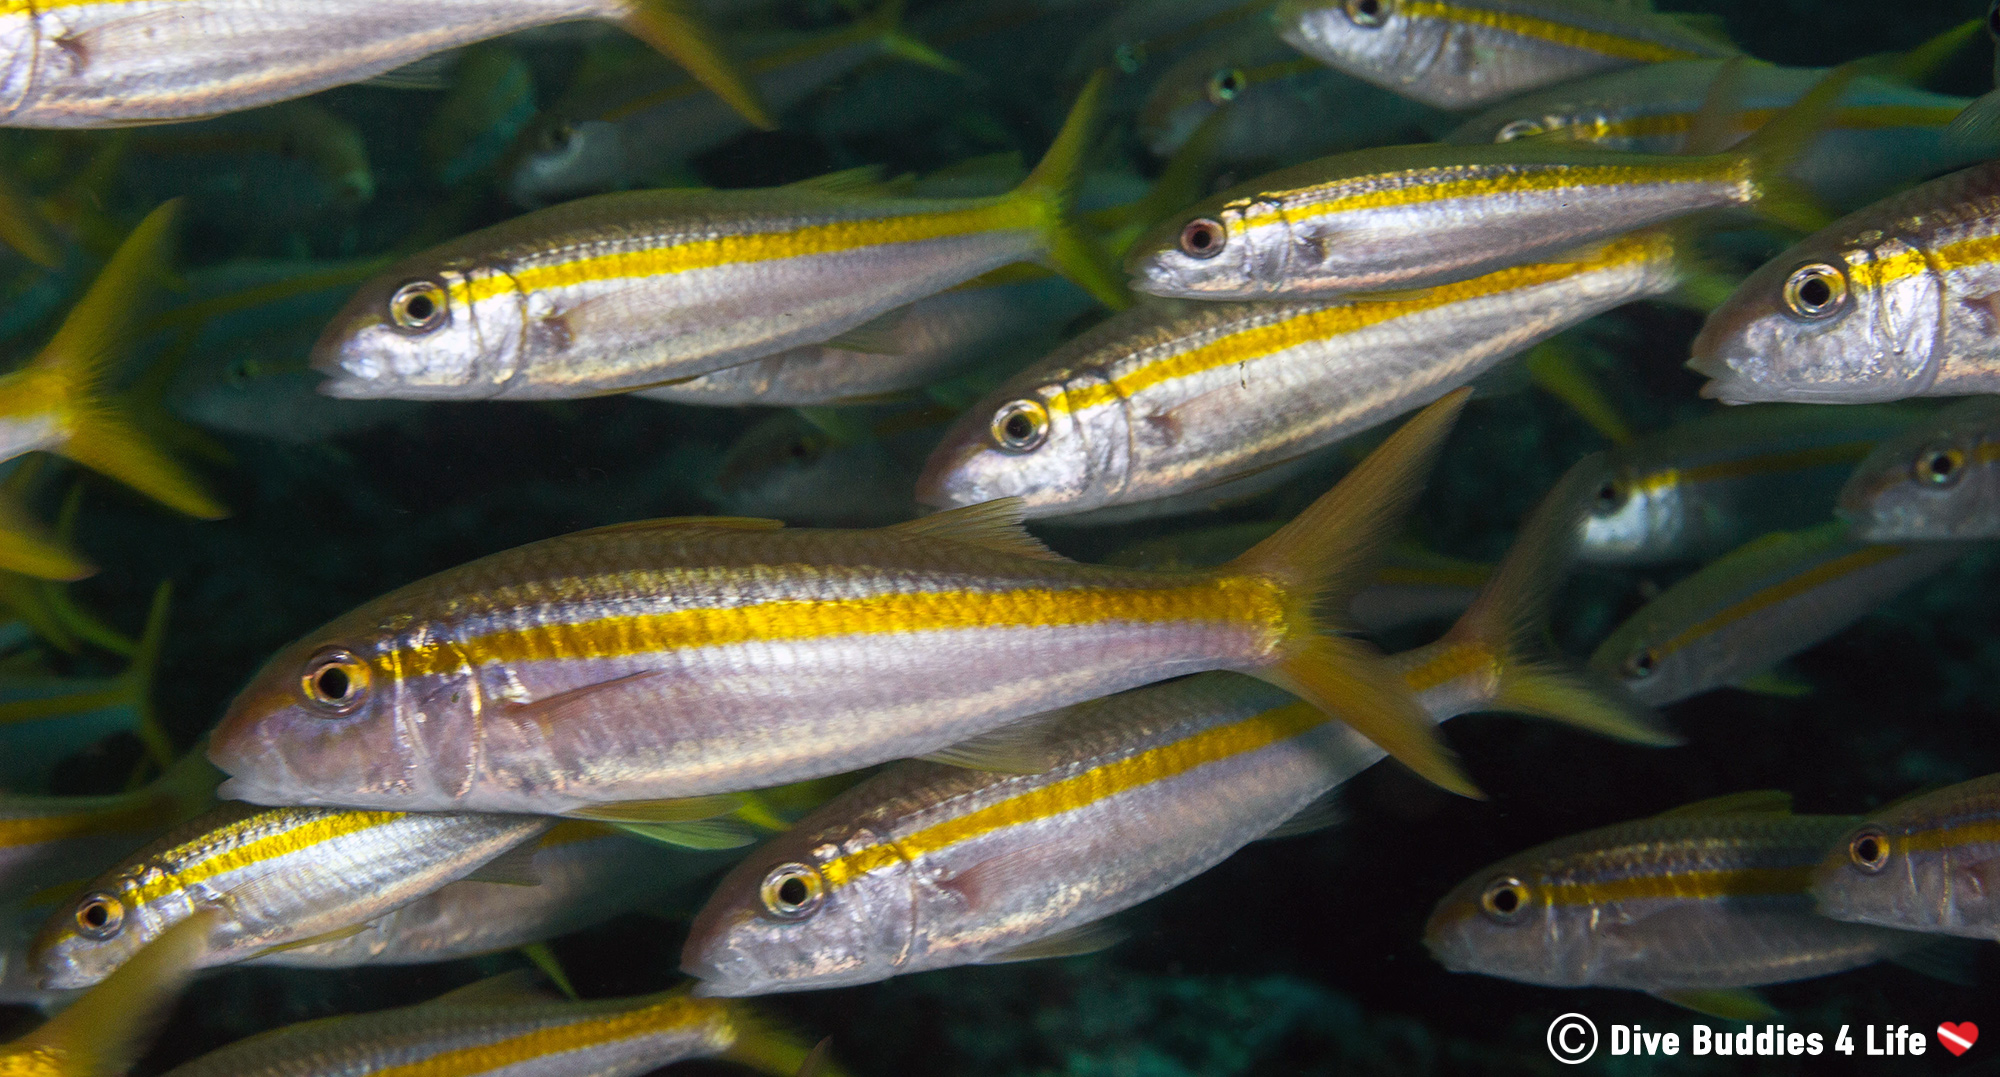 A Large School Of Mullet Fish In Zihuatanejo, Mexico